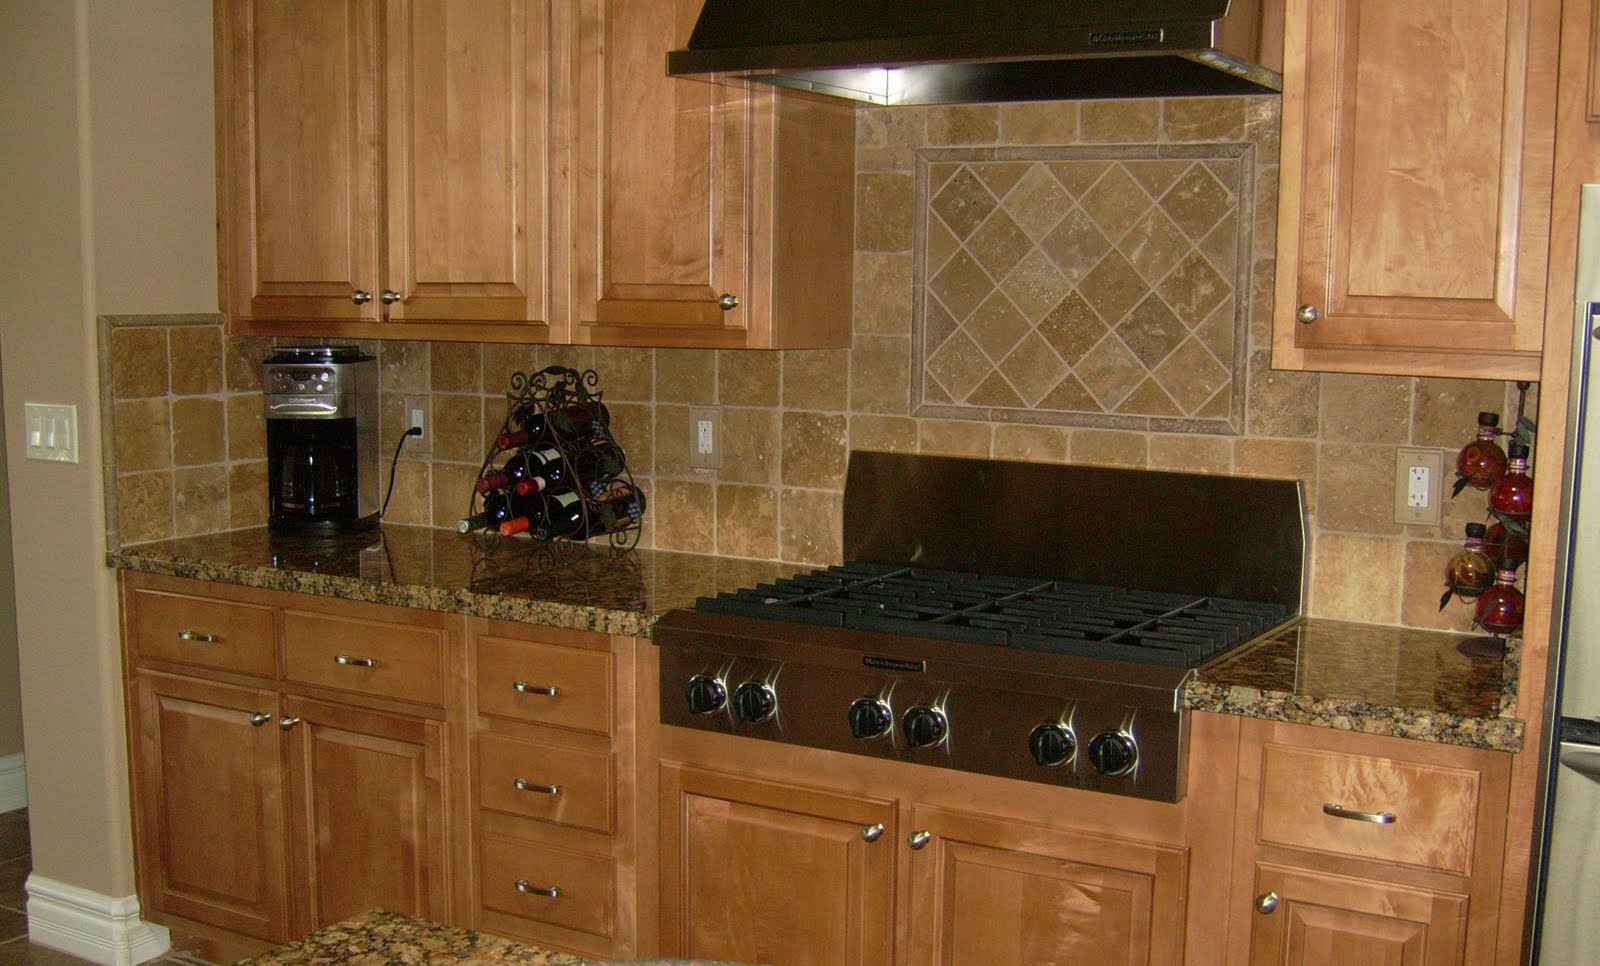 Divine Design Kitchen Backsplash Feel The Home